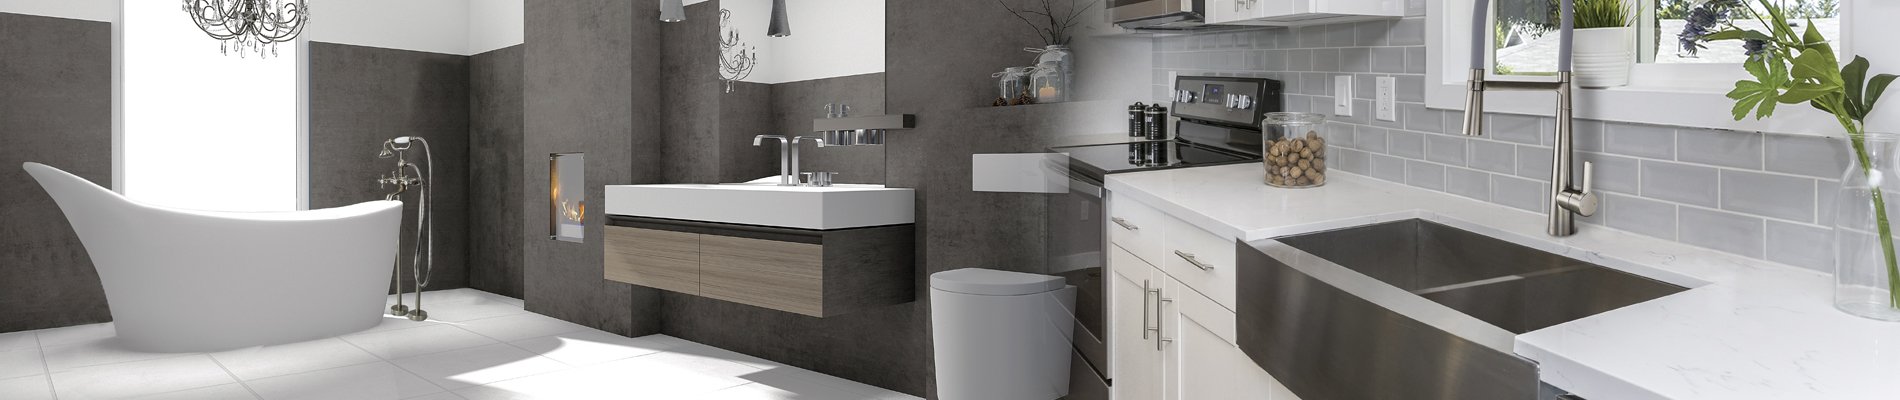 Modern Bathroom & Kitchen Design